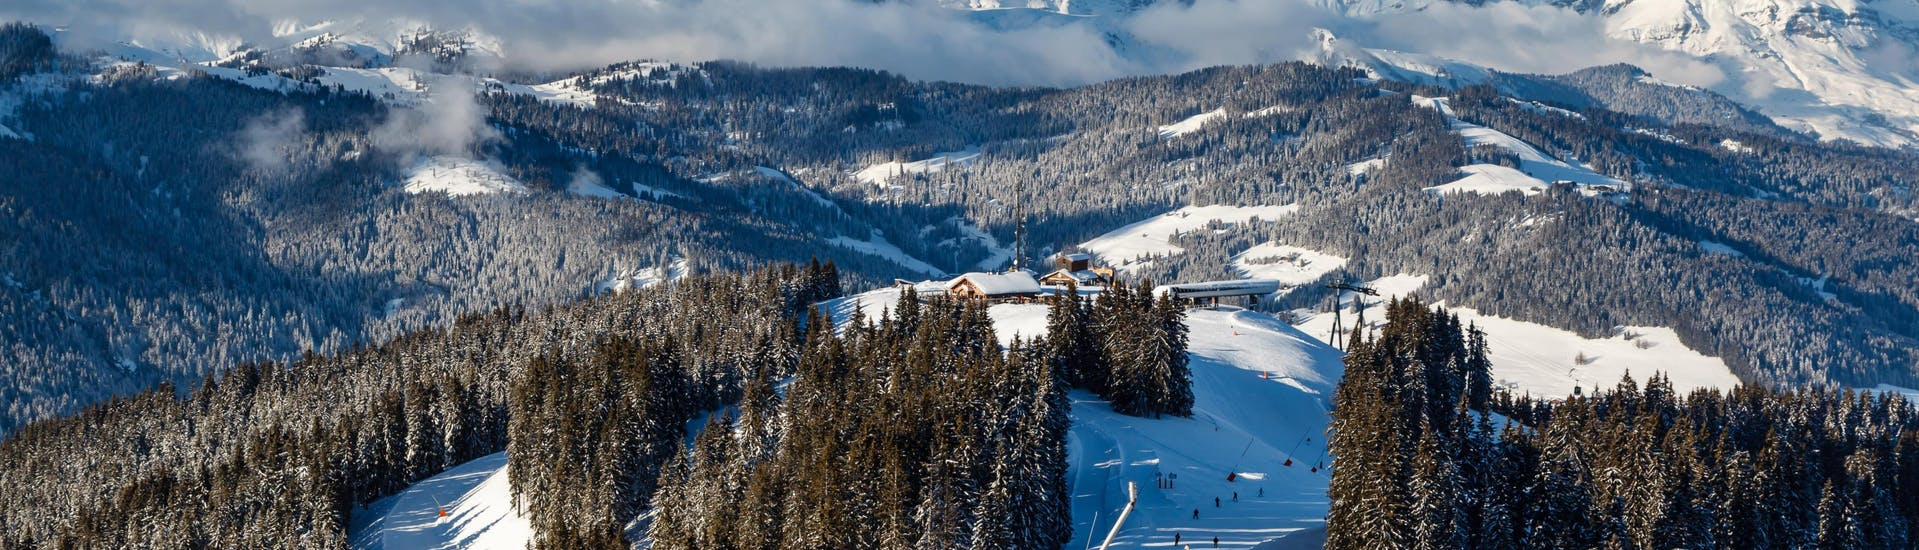 View of the slopes in the French ski resort of Megève where local ski schools offer a wide range of ski lessons to those who want to learn to ski.